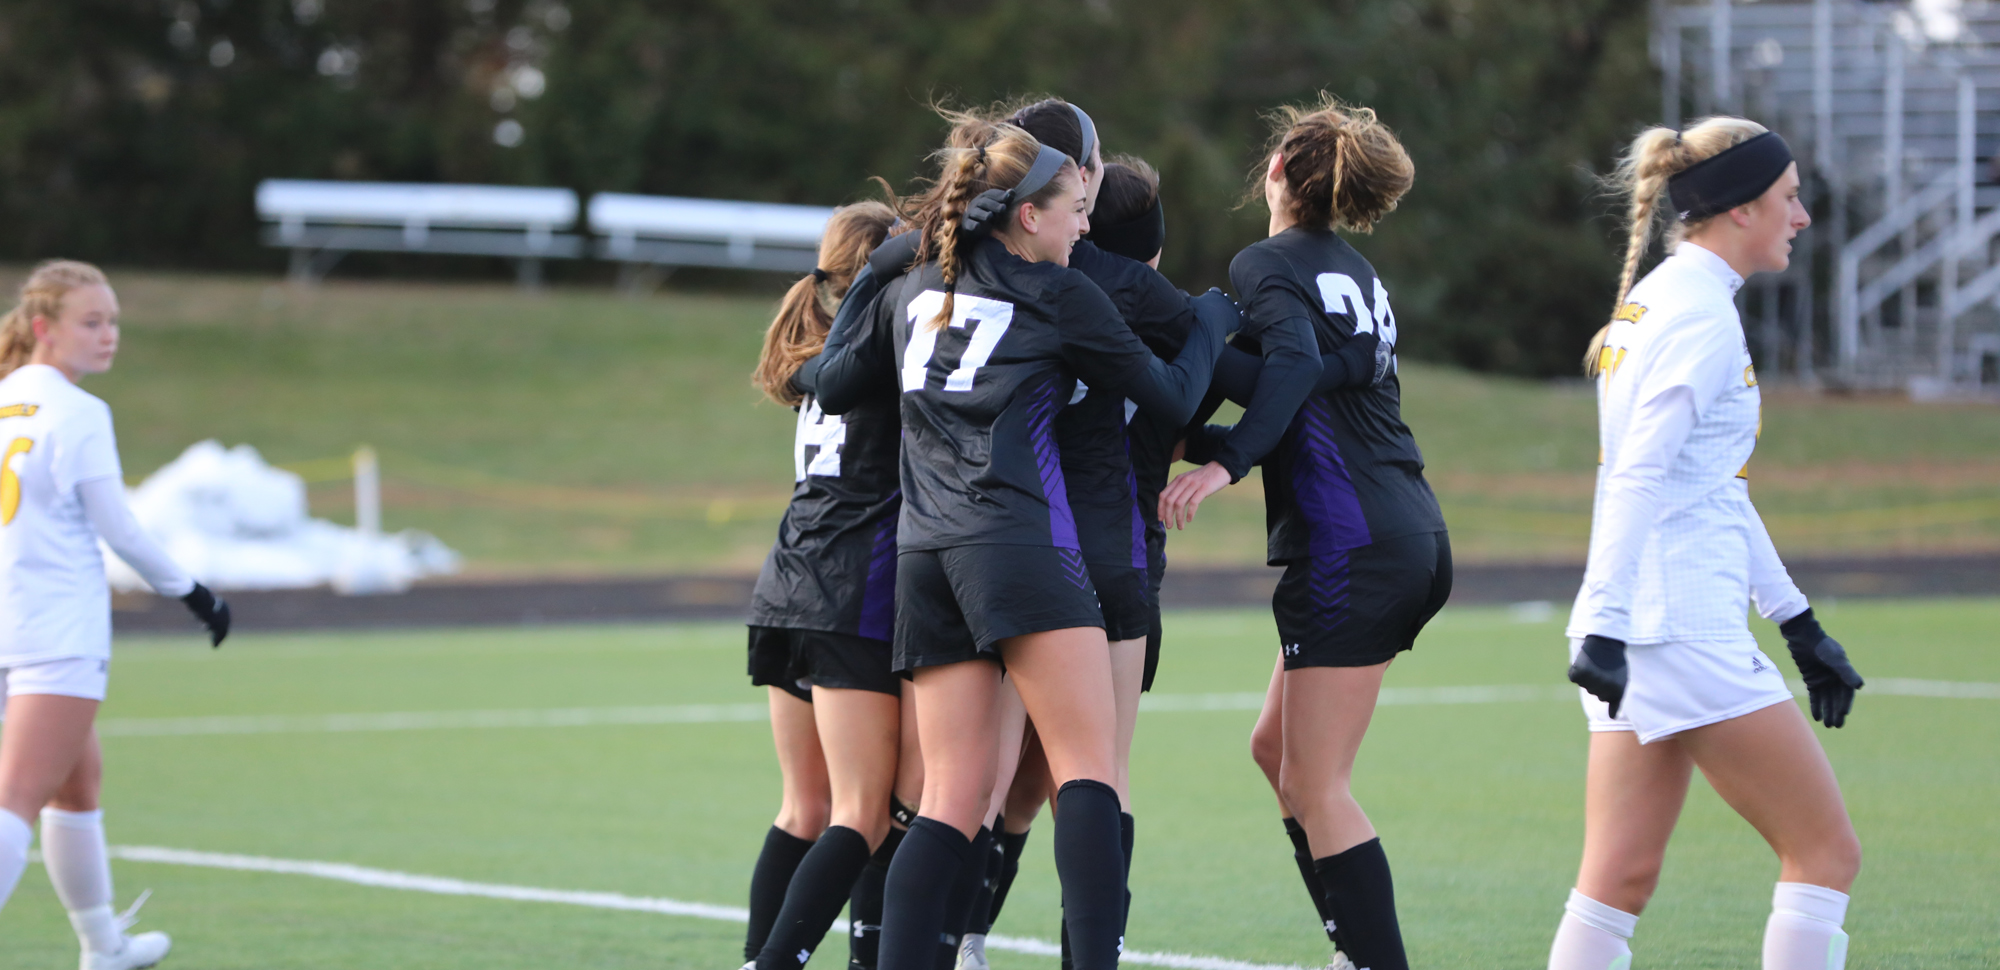 The University of Scranton women's soccer team advanced on penalty kicks against No. 10 Centre in the first round of the NCAA Tournament on Saturday. Photo Credit: Ohio Norther University Sports Information.